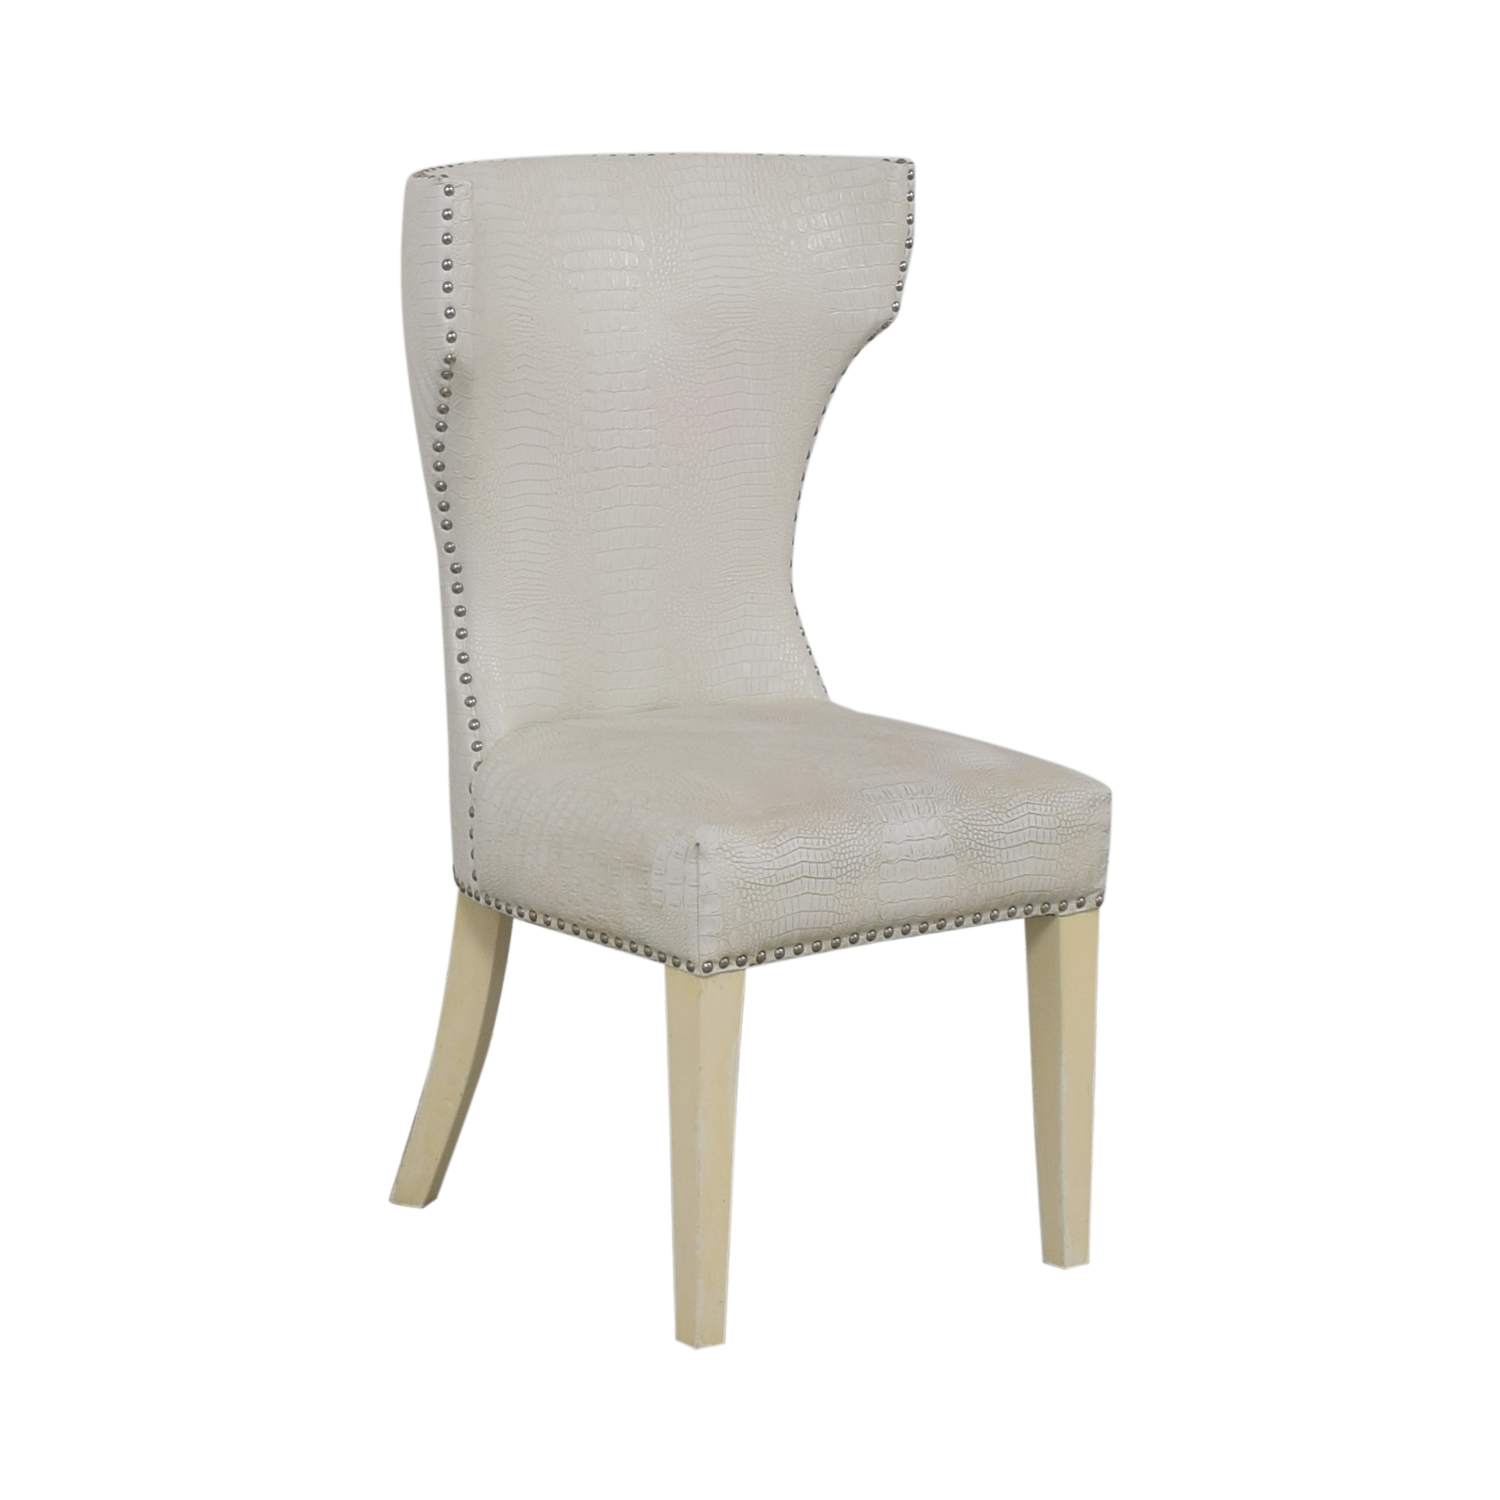 Shine by S.H.O Shine by S.H.O. Verona Chair for sale